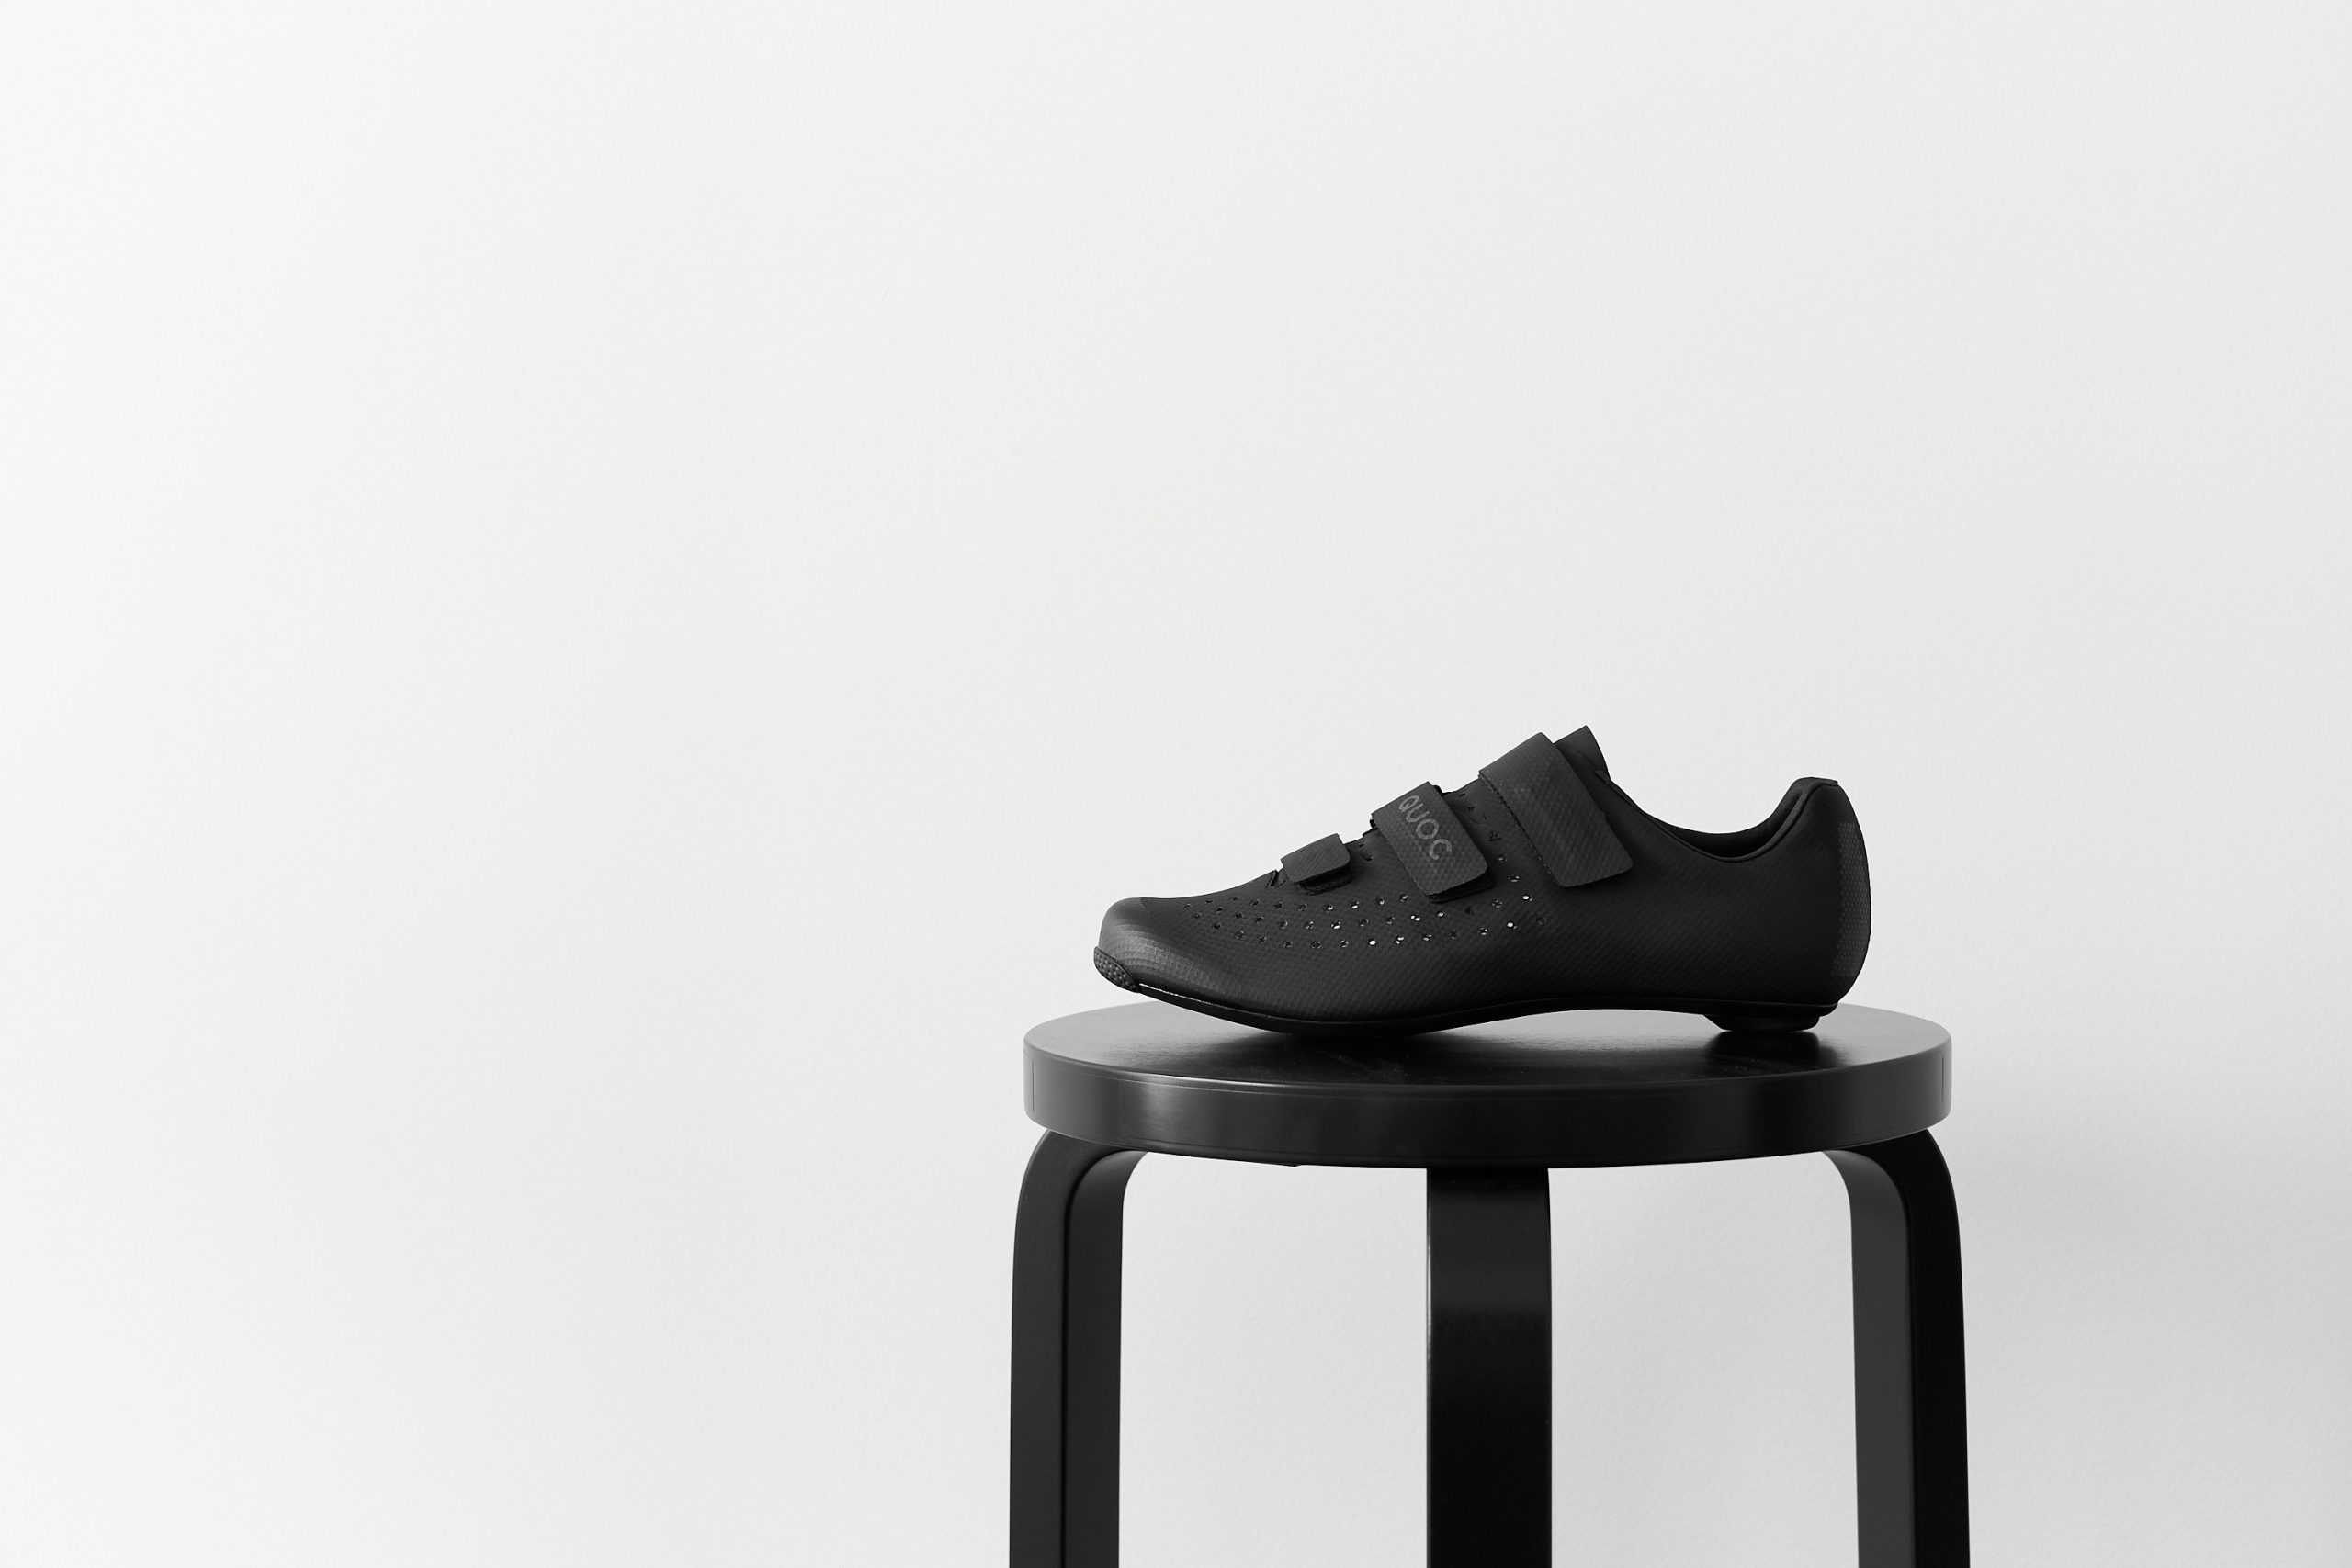 Well-Designed, Minimalist Cycling Kit & Accessories - Quoc Night Mono Plain Black Cycling Shoes